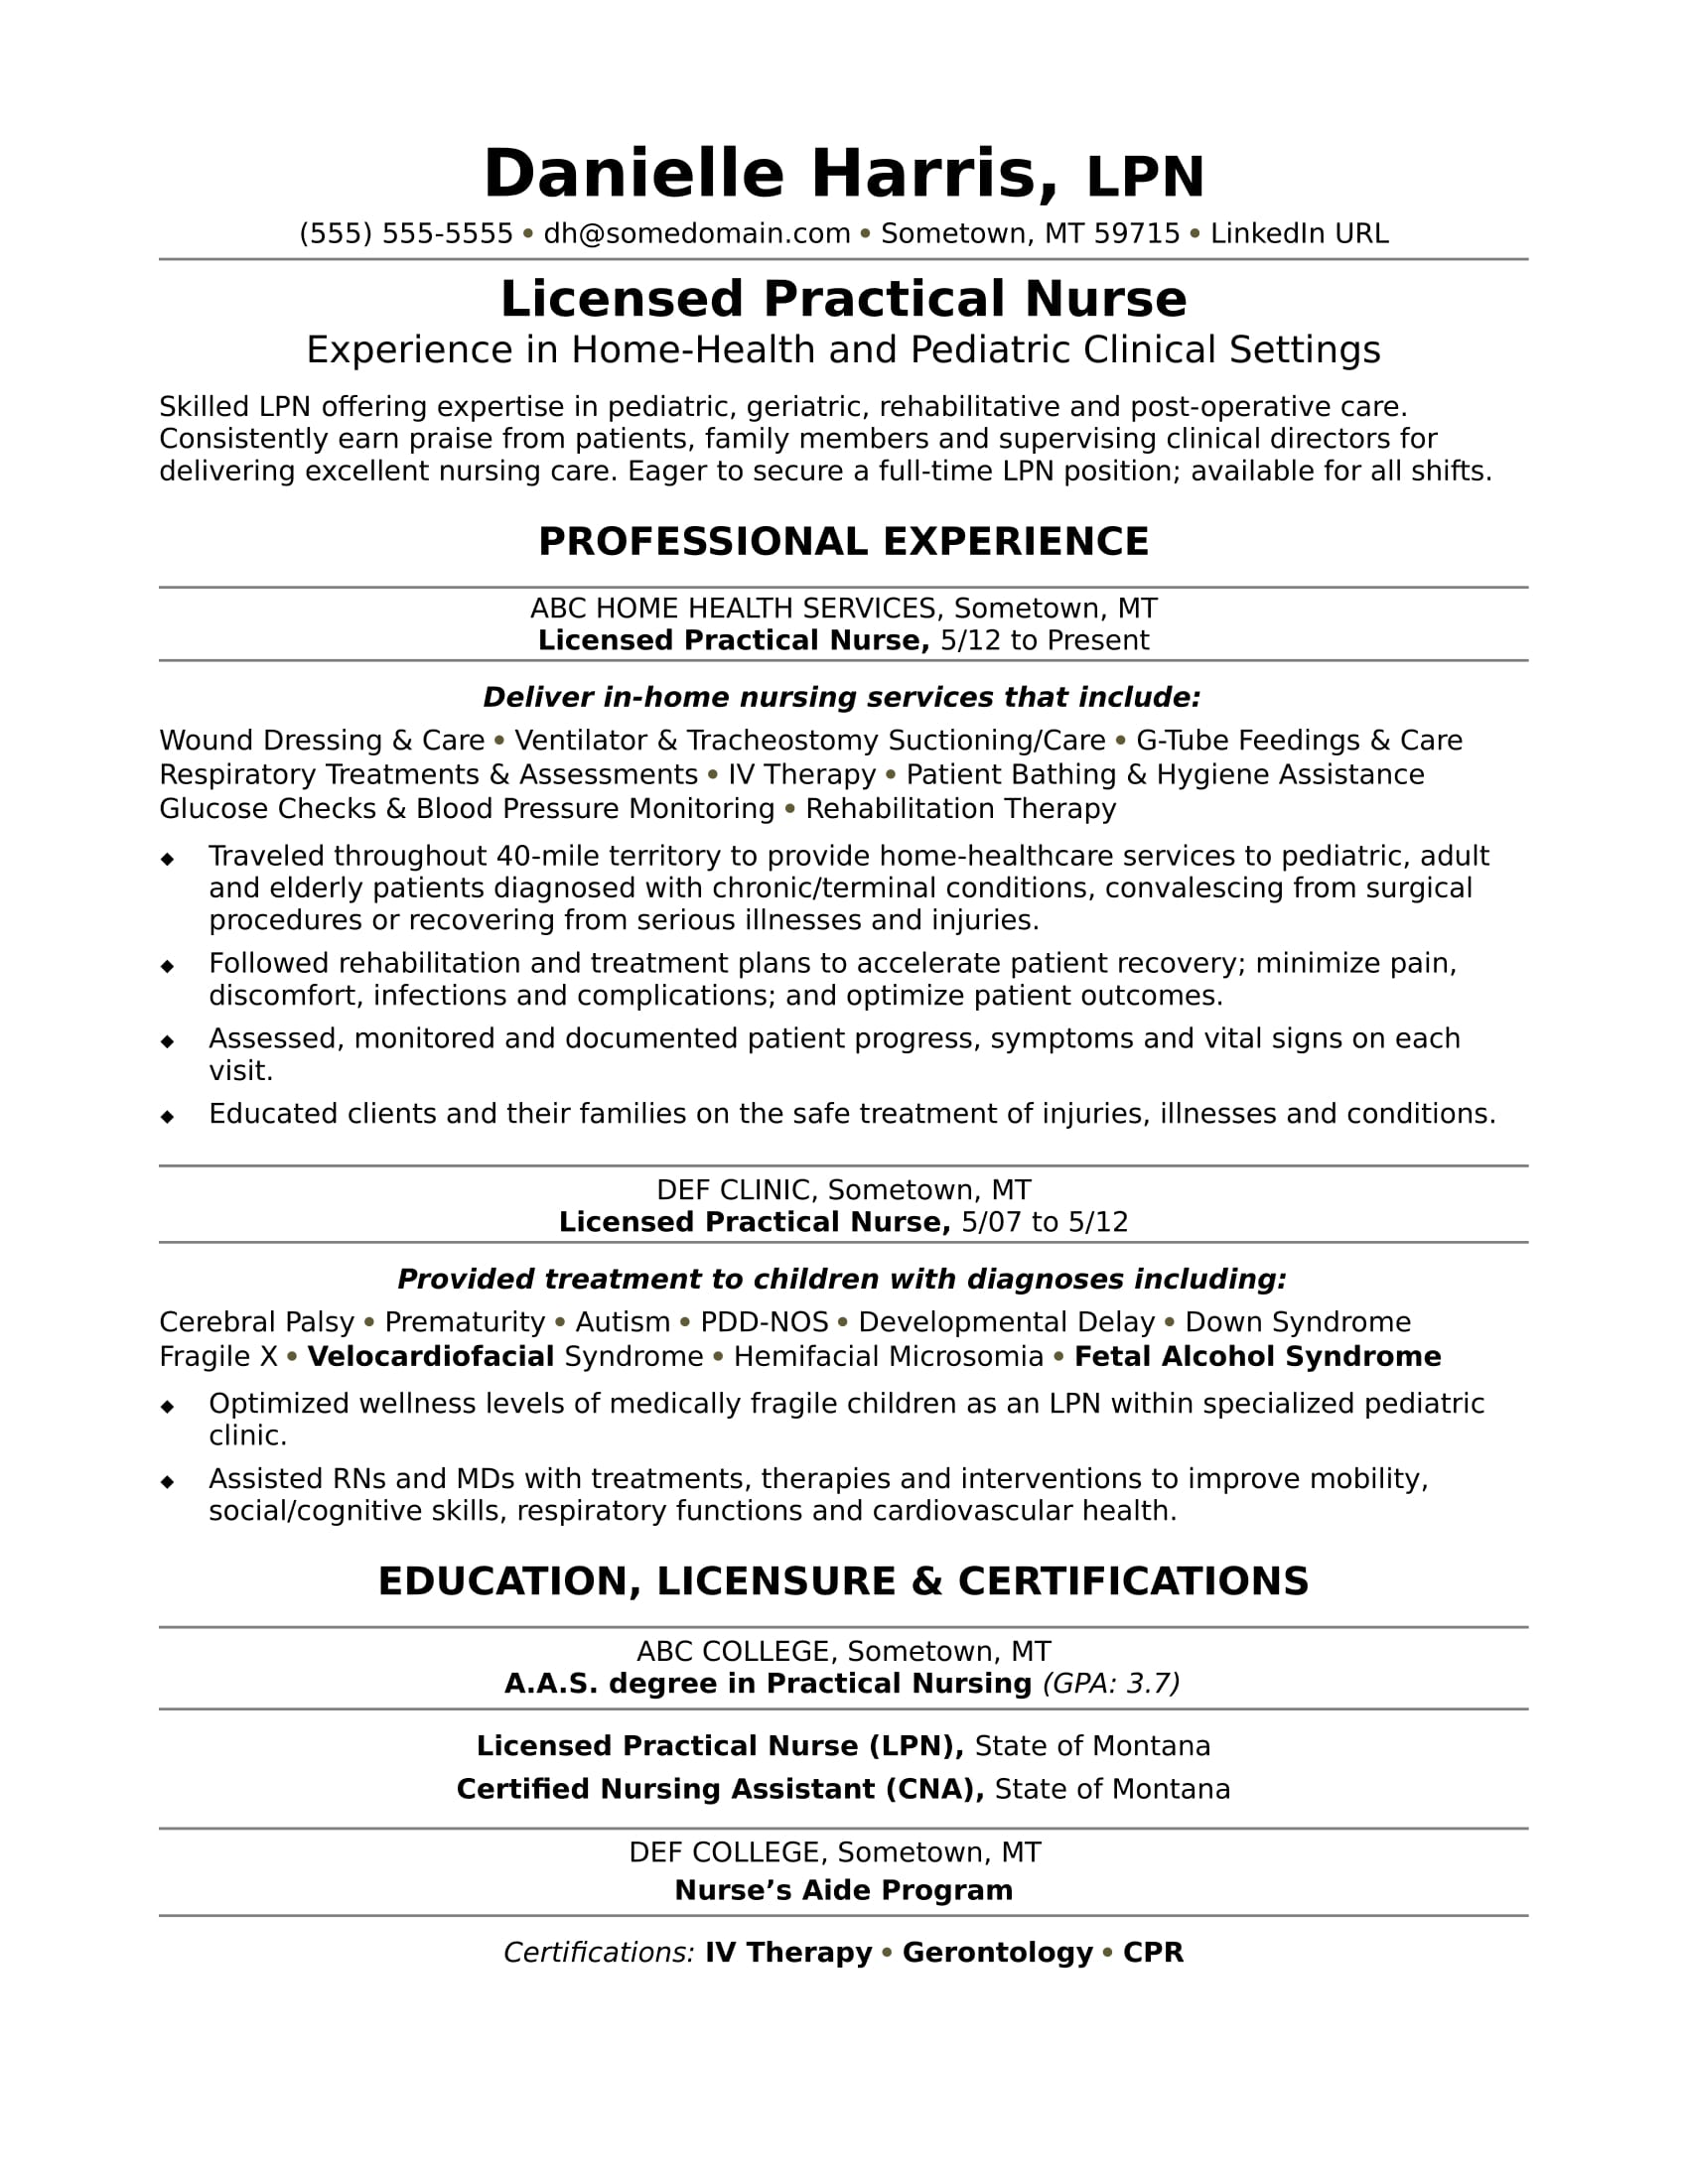 licensed practical nurse resume sample monster lpn nursing examples retail manager Resume Lpn Nursing Resume Examples